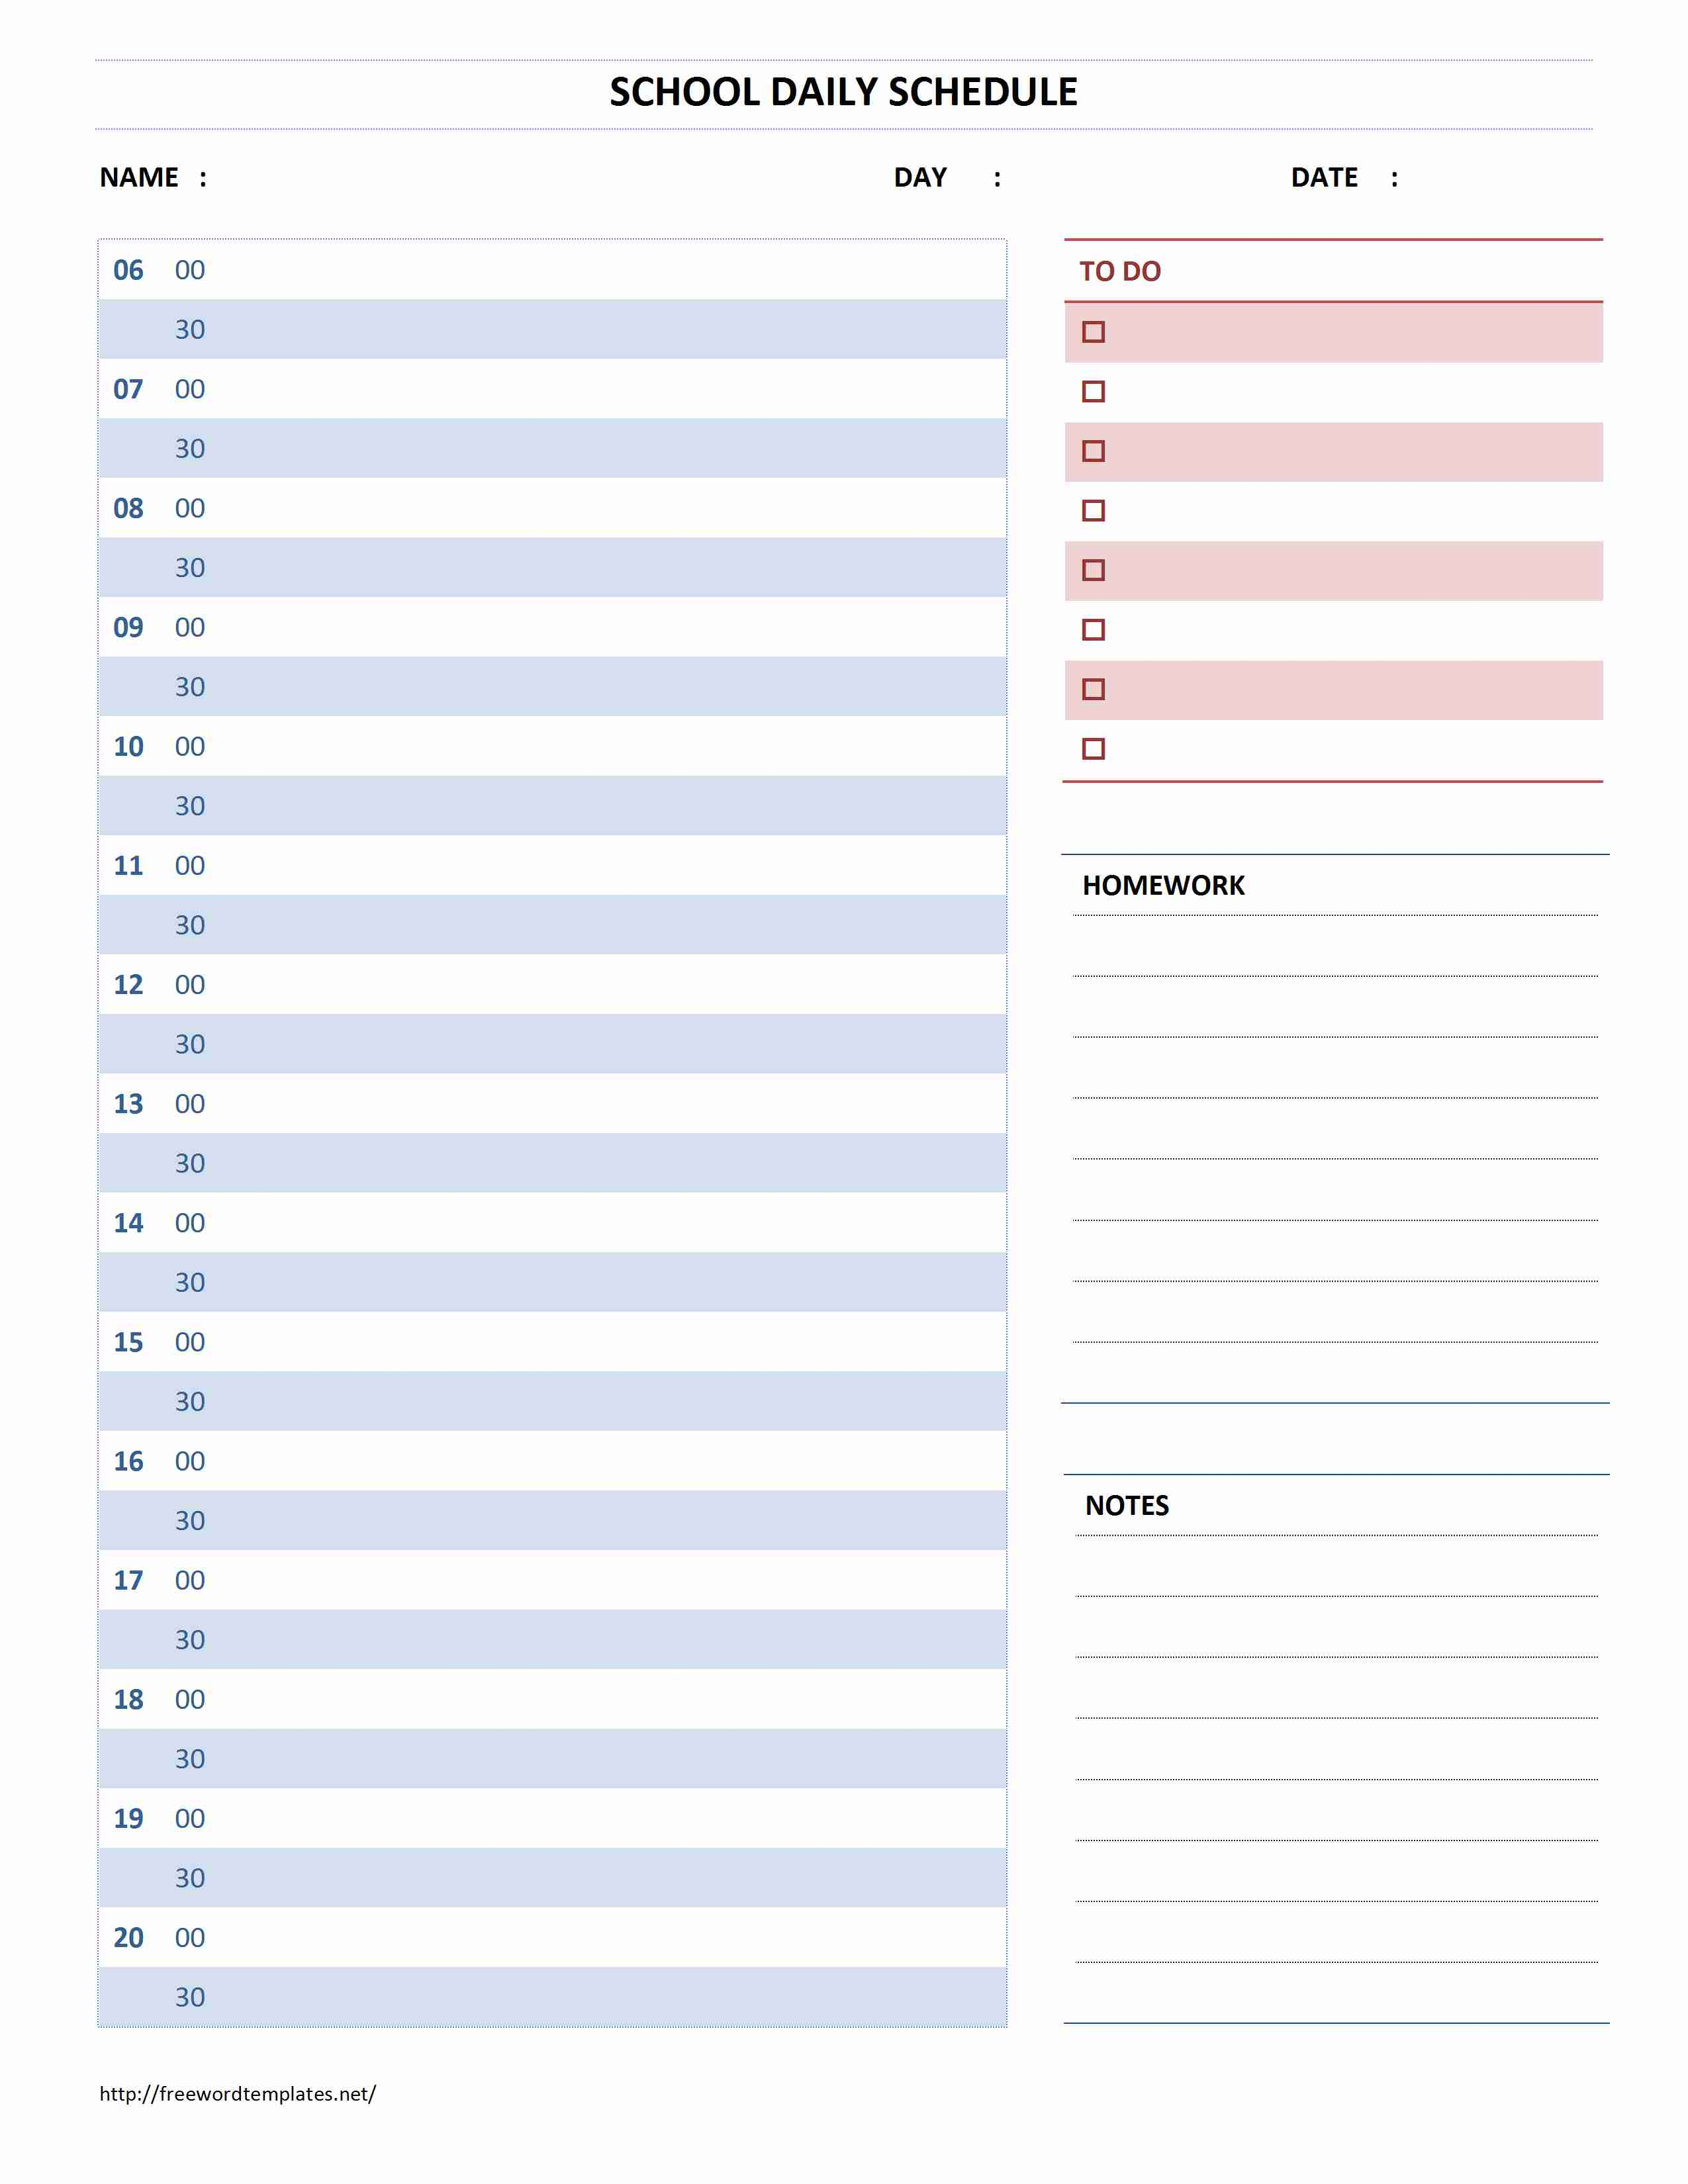 School Daily Schedule intended for 5 School Day Calendar Blank